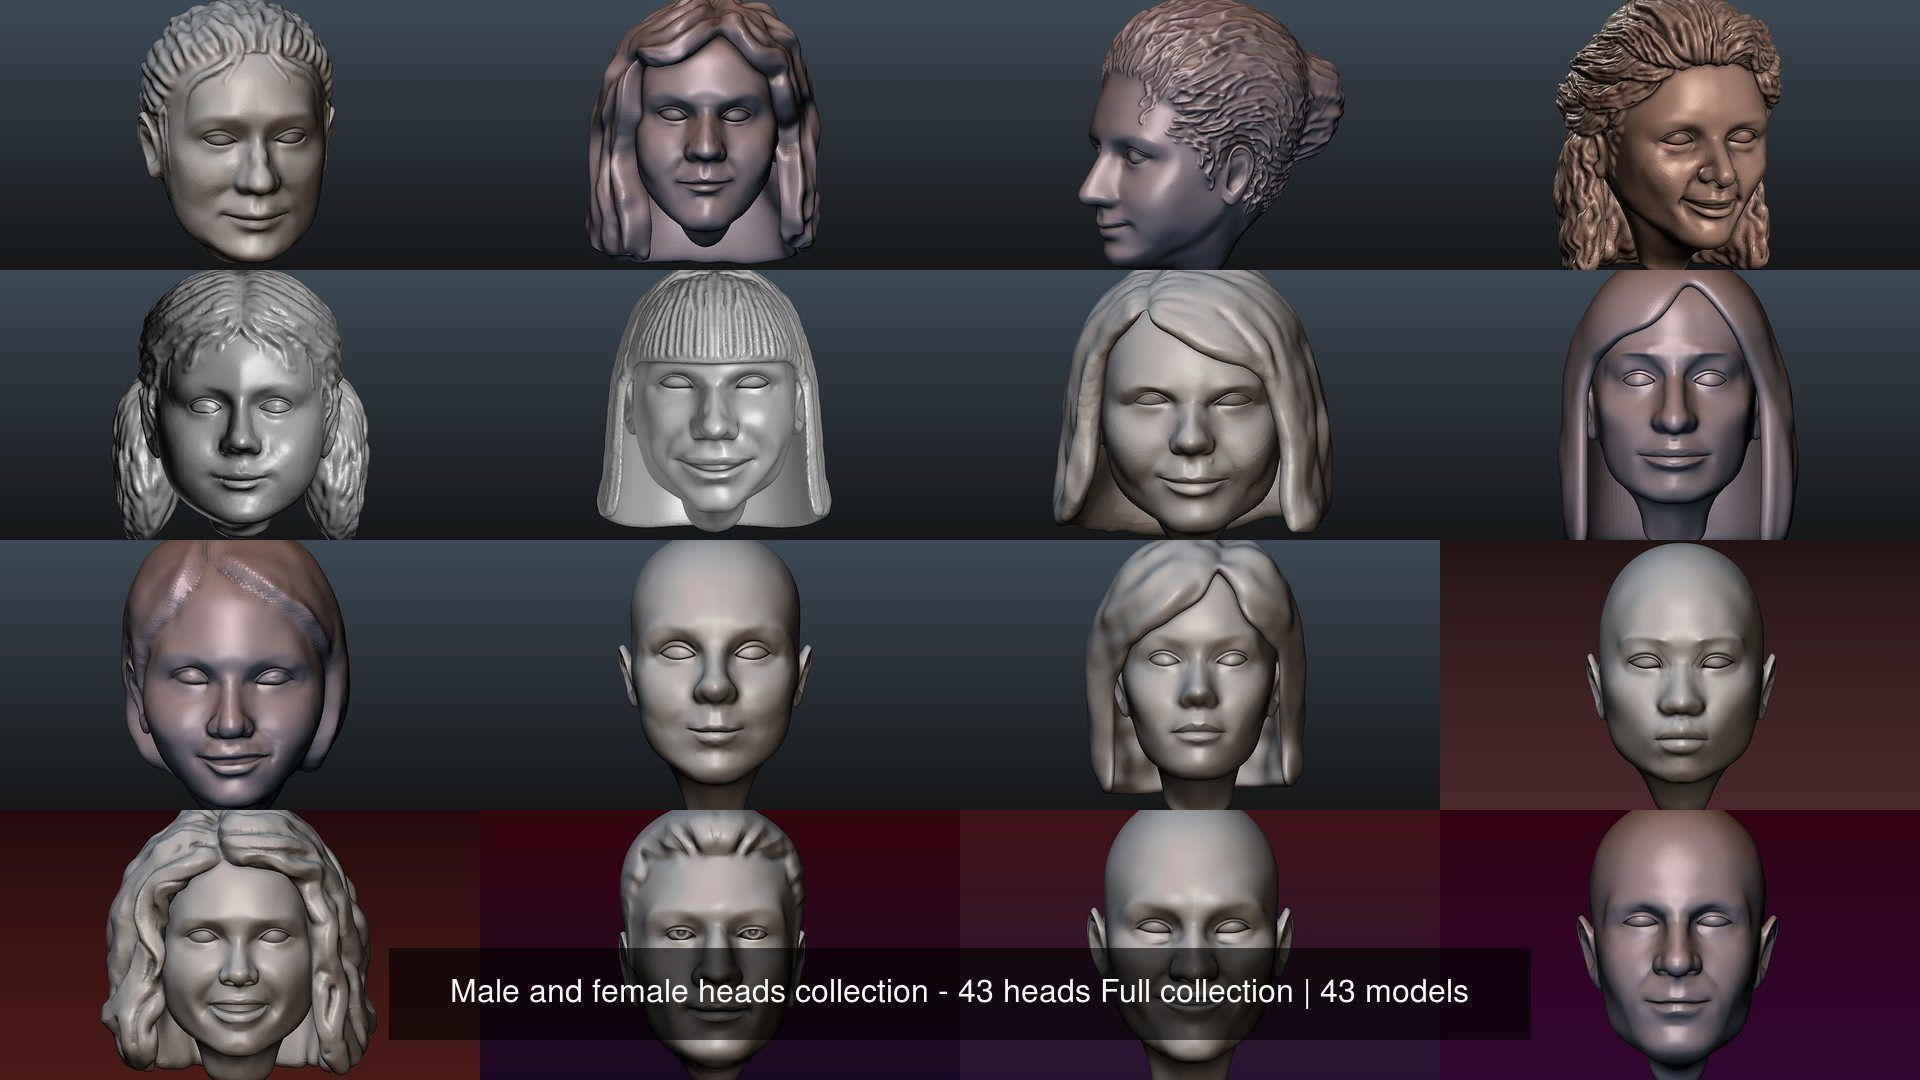 Male and female heads collection - 43 heads Full collection